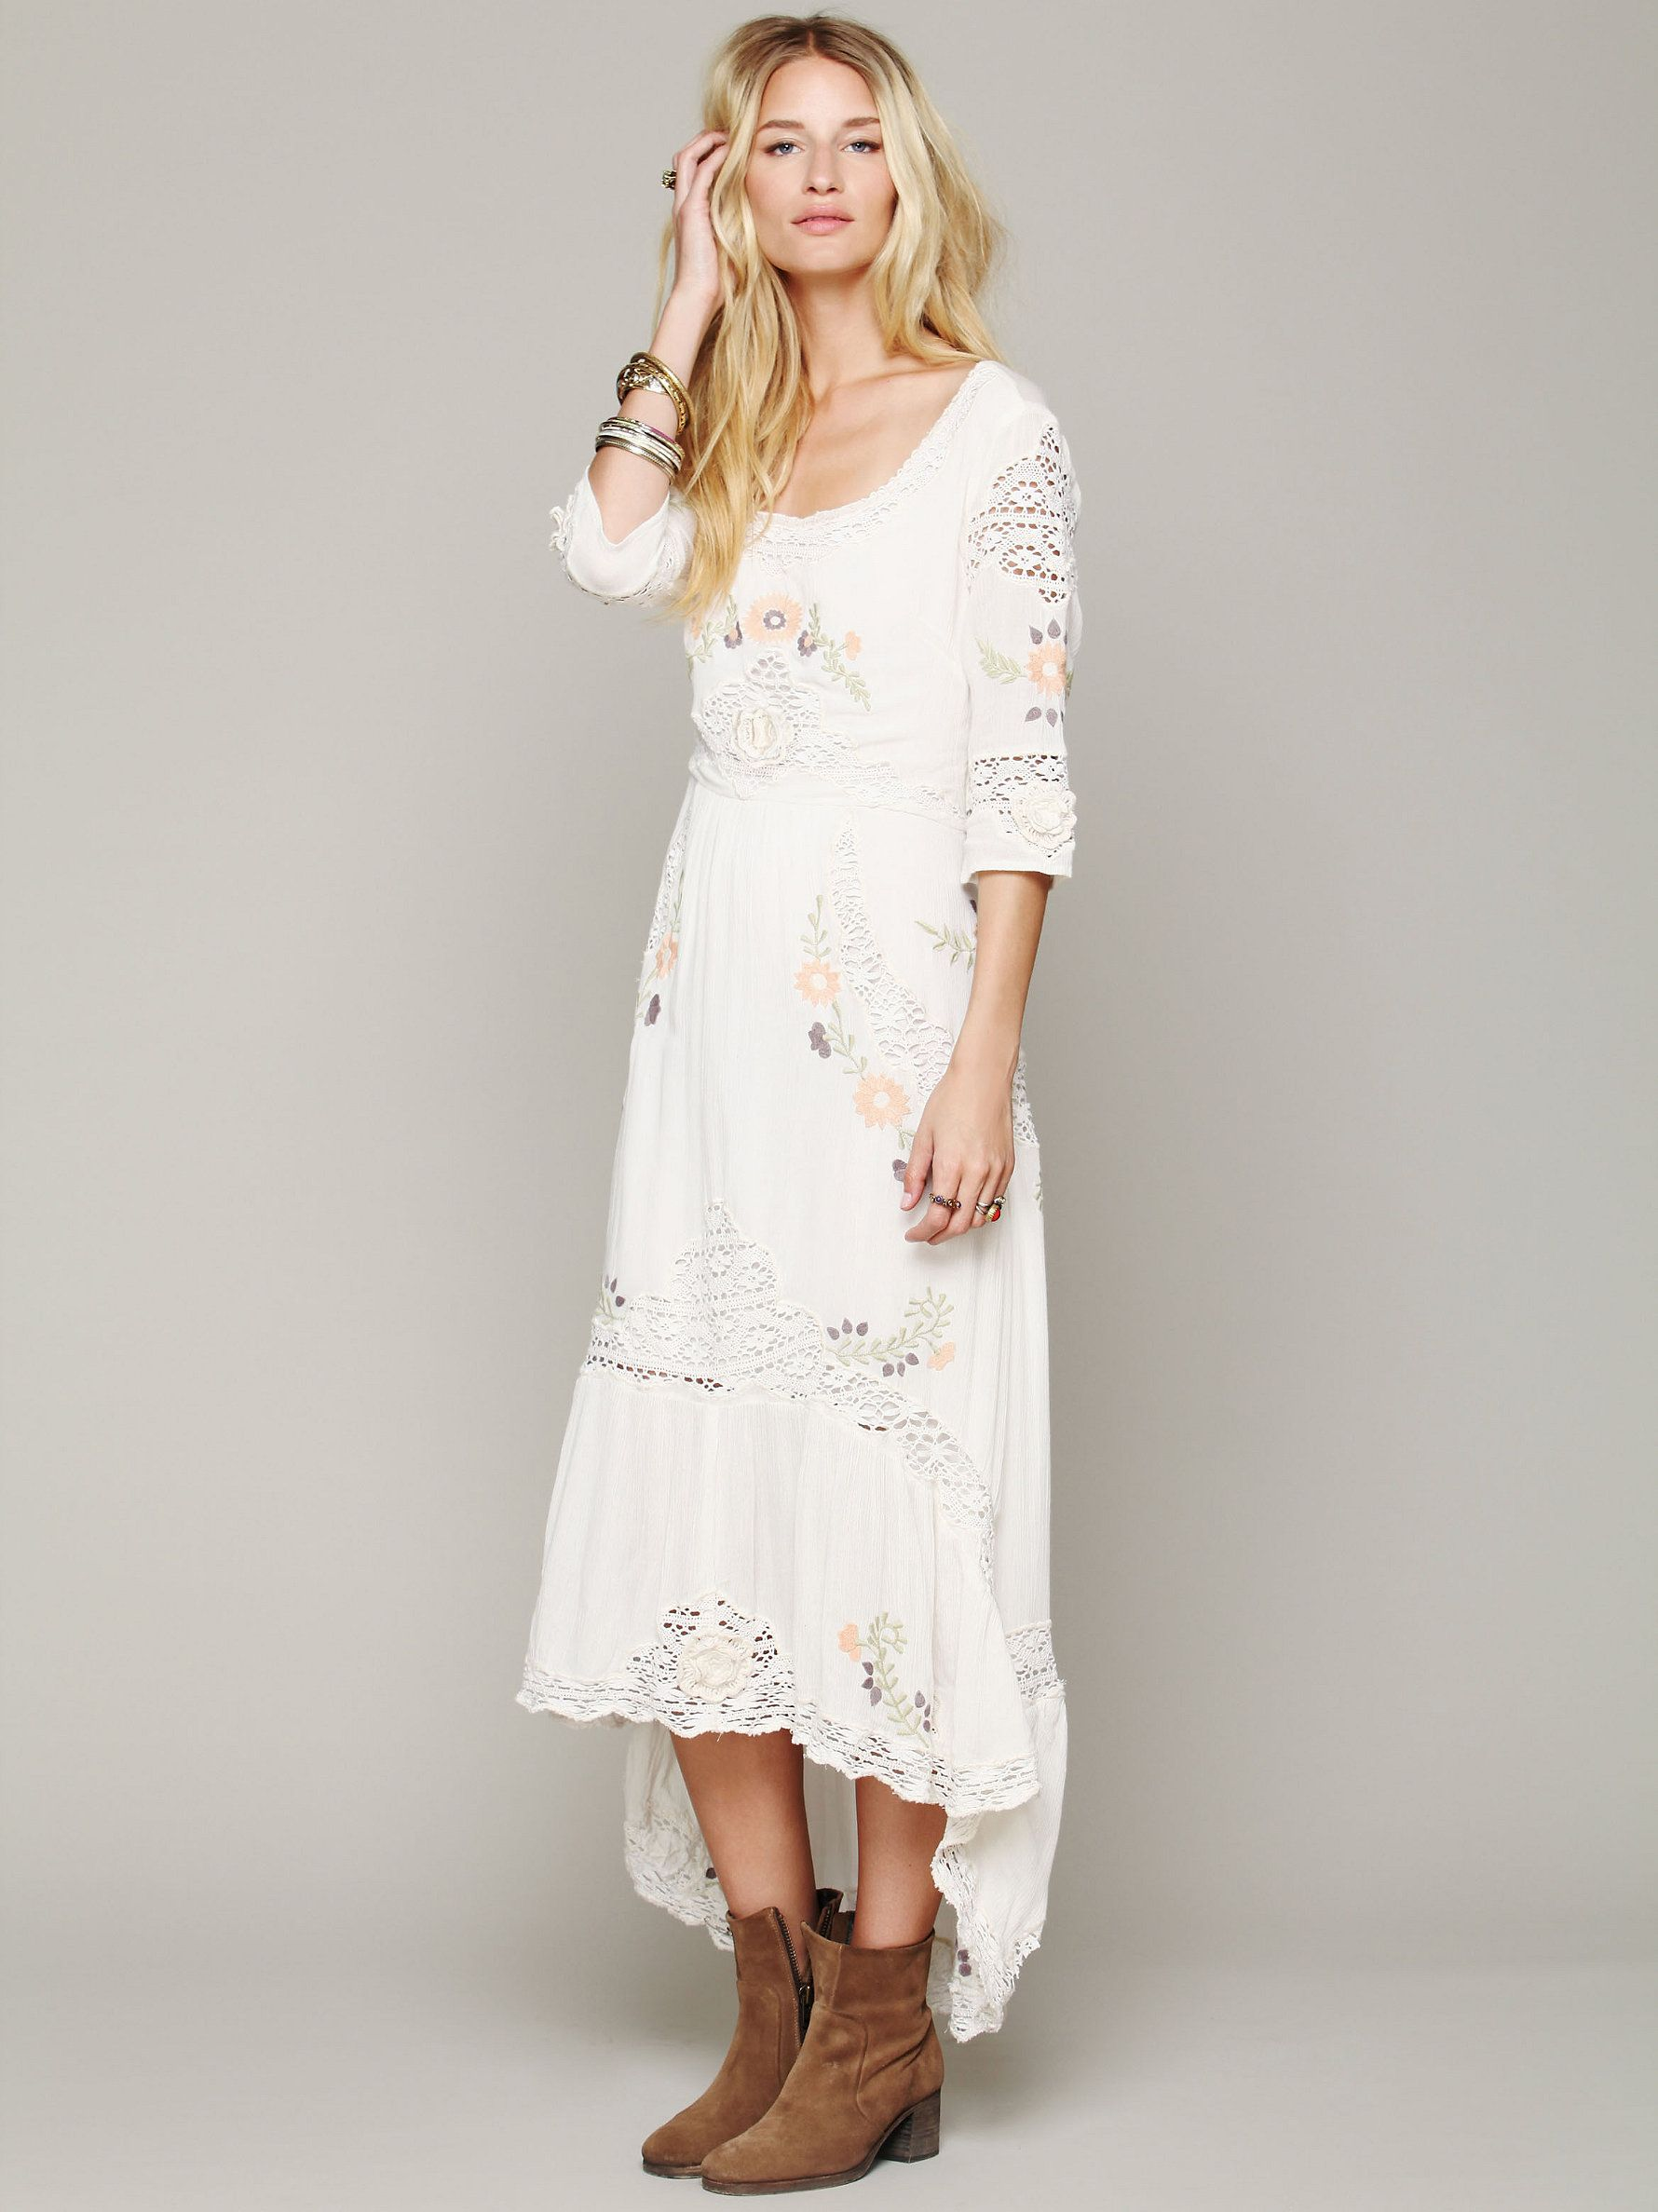 Free people mexican wedding dress i wouldnut wear this in my